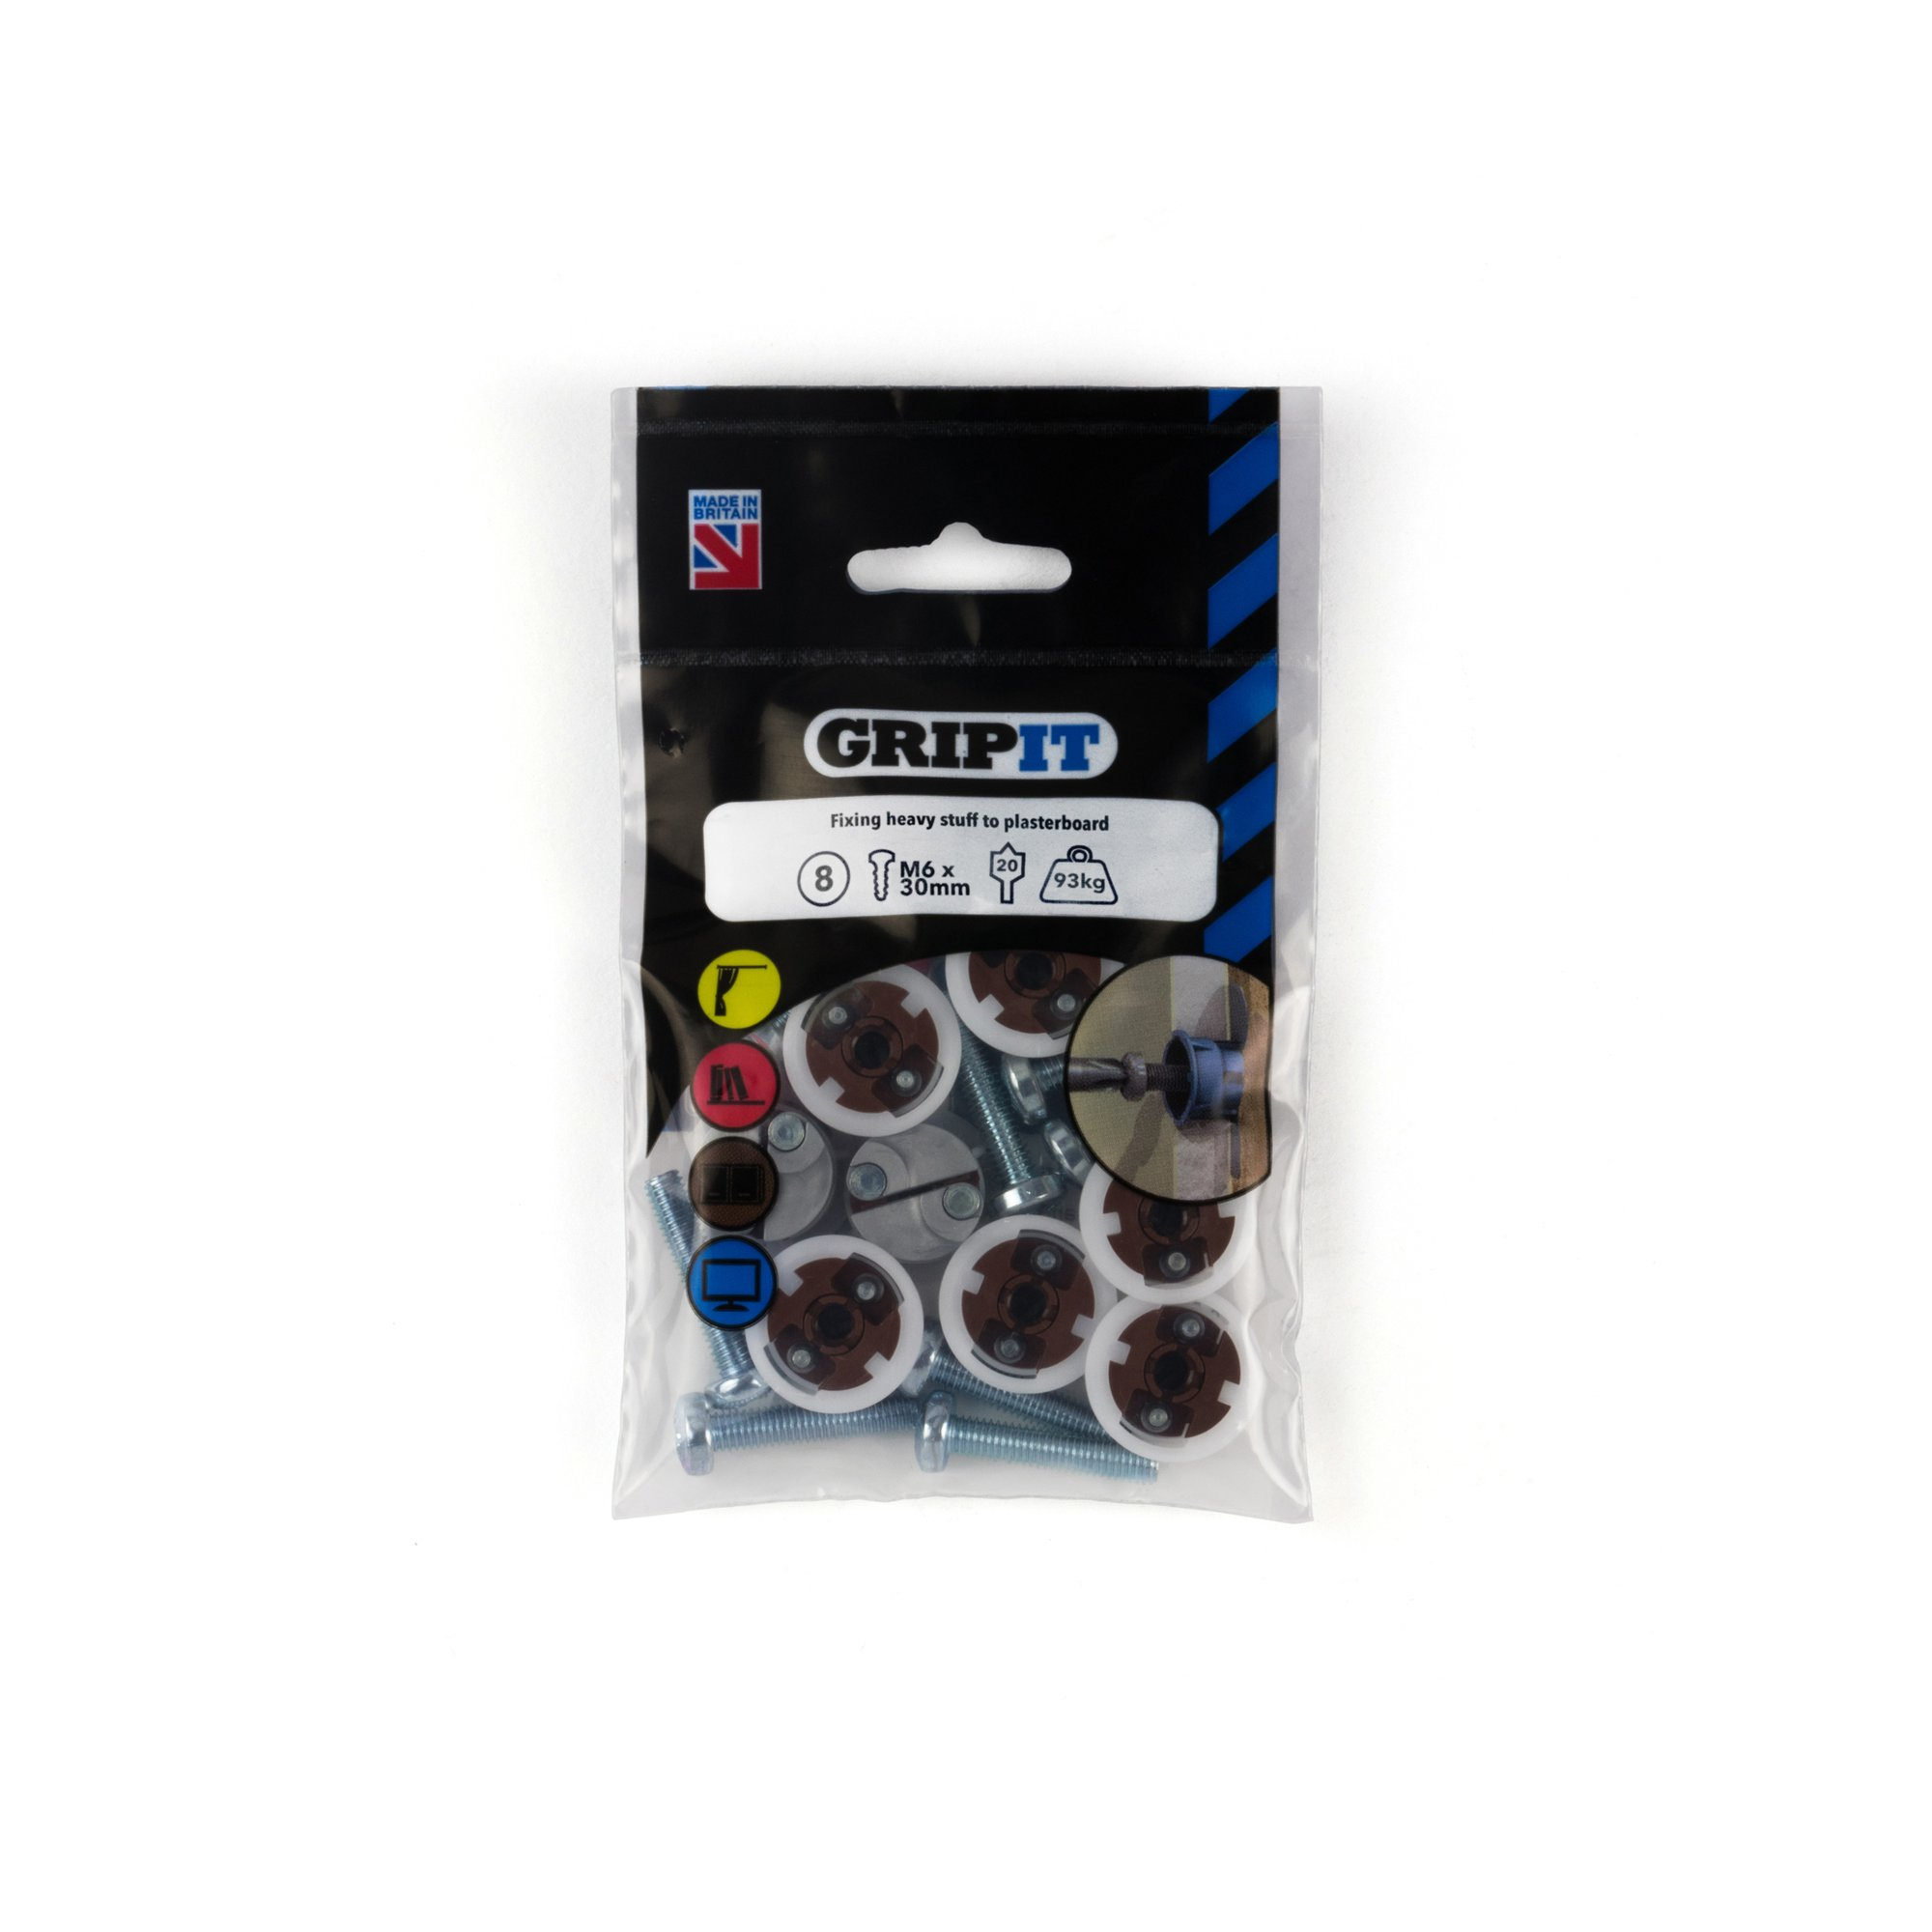 GRIPIT FIXINGS - BROWN 20MM FIXING PACK - 202-308 - PK8